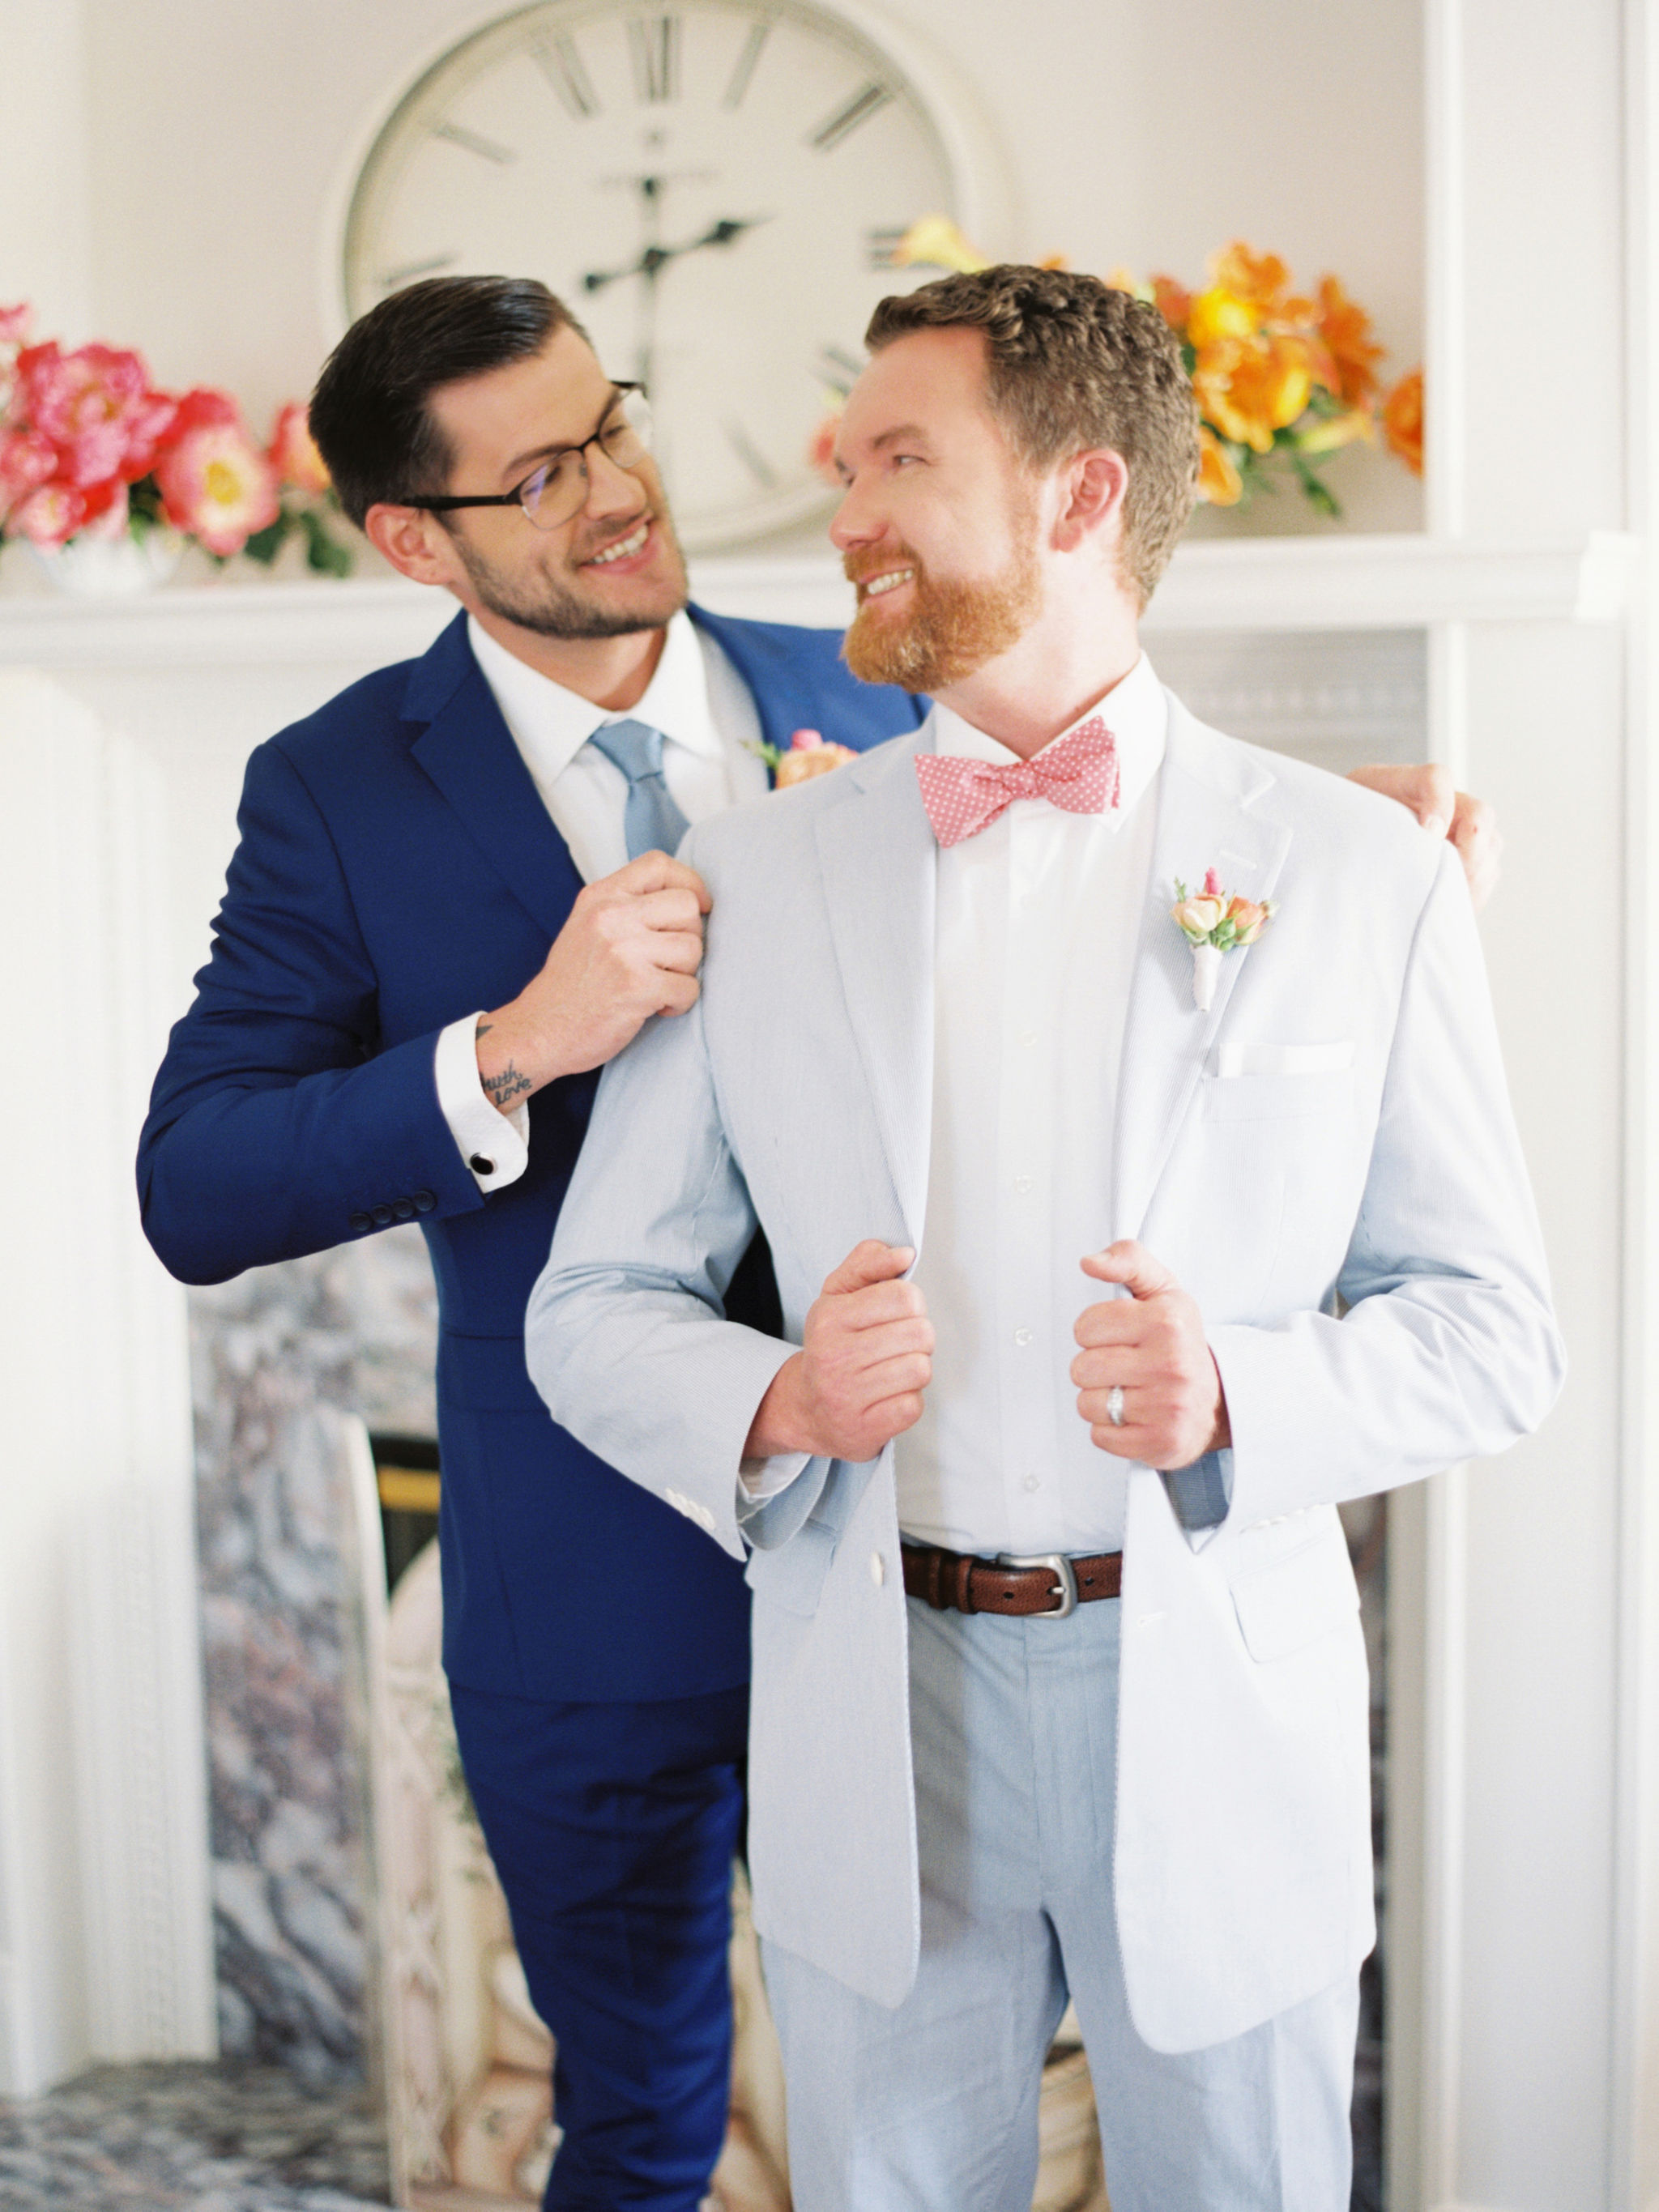 Same Sex Wedding Fashion